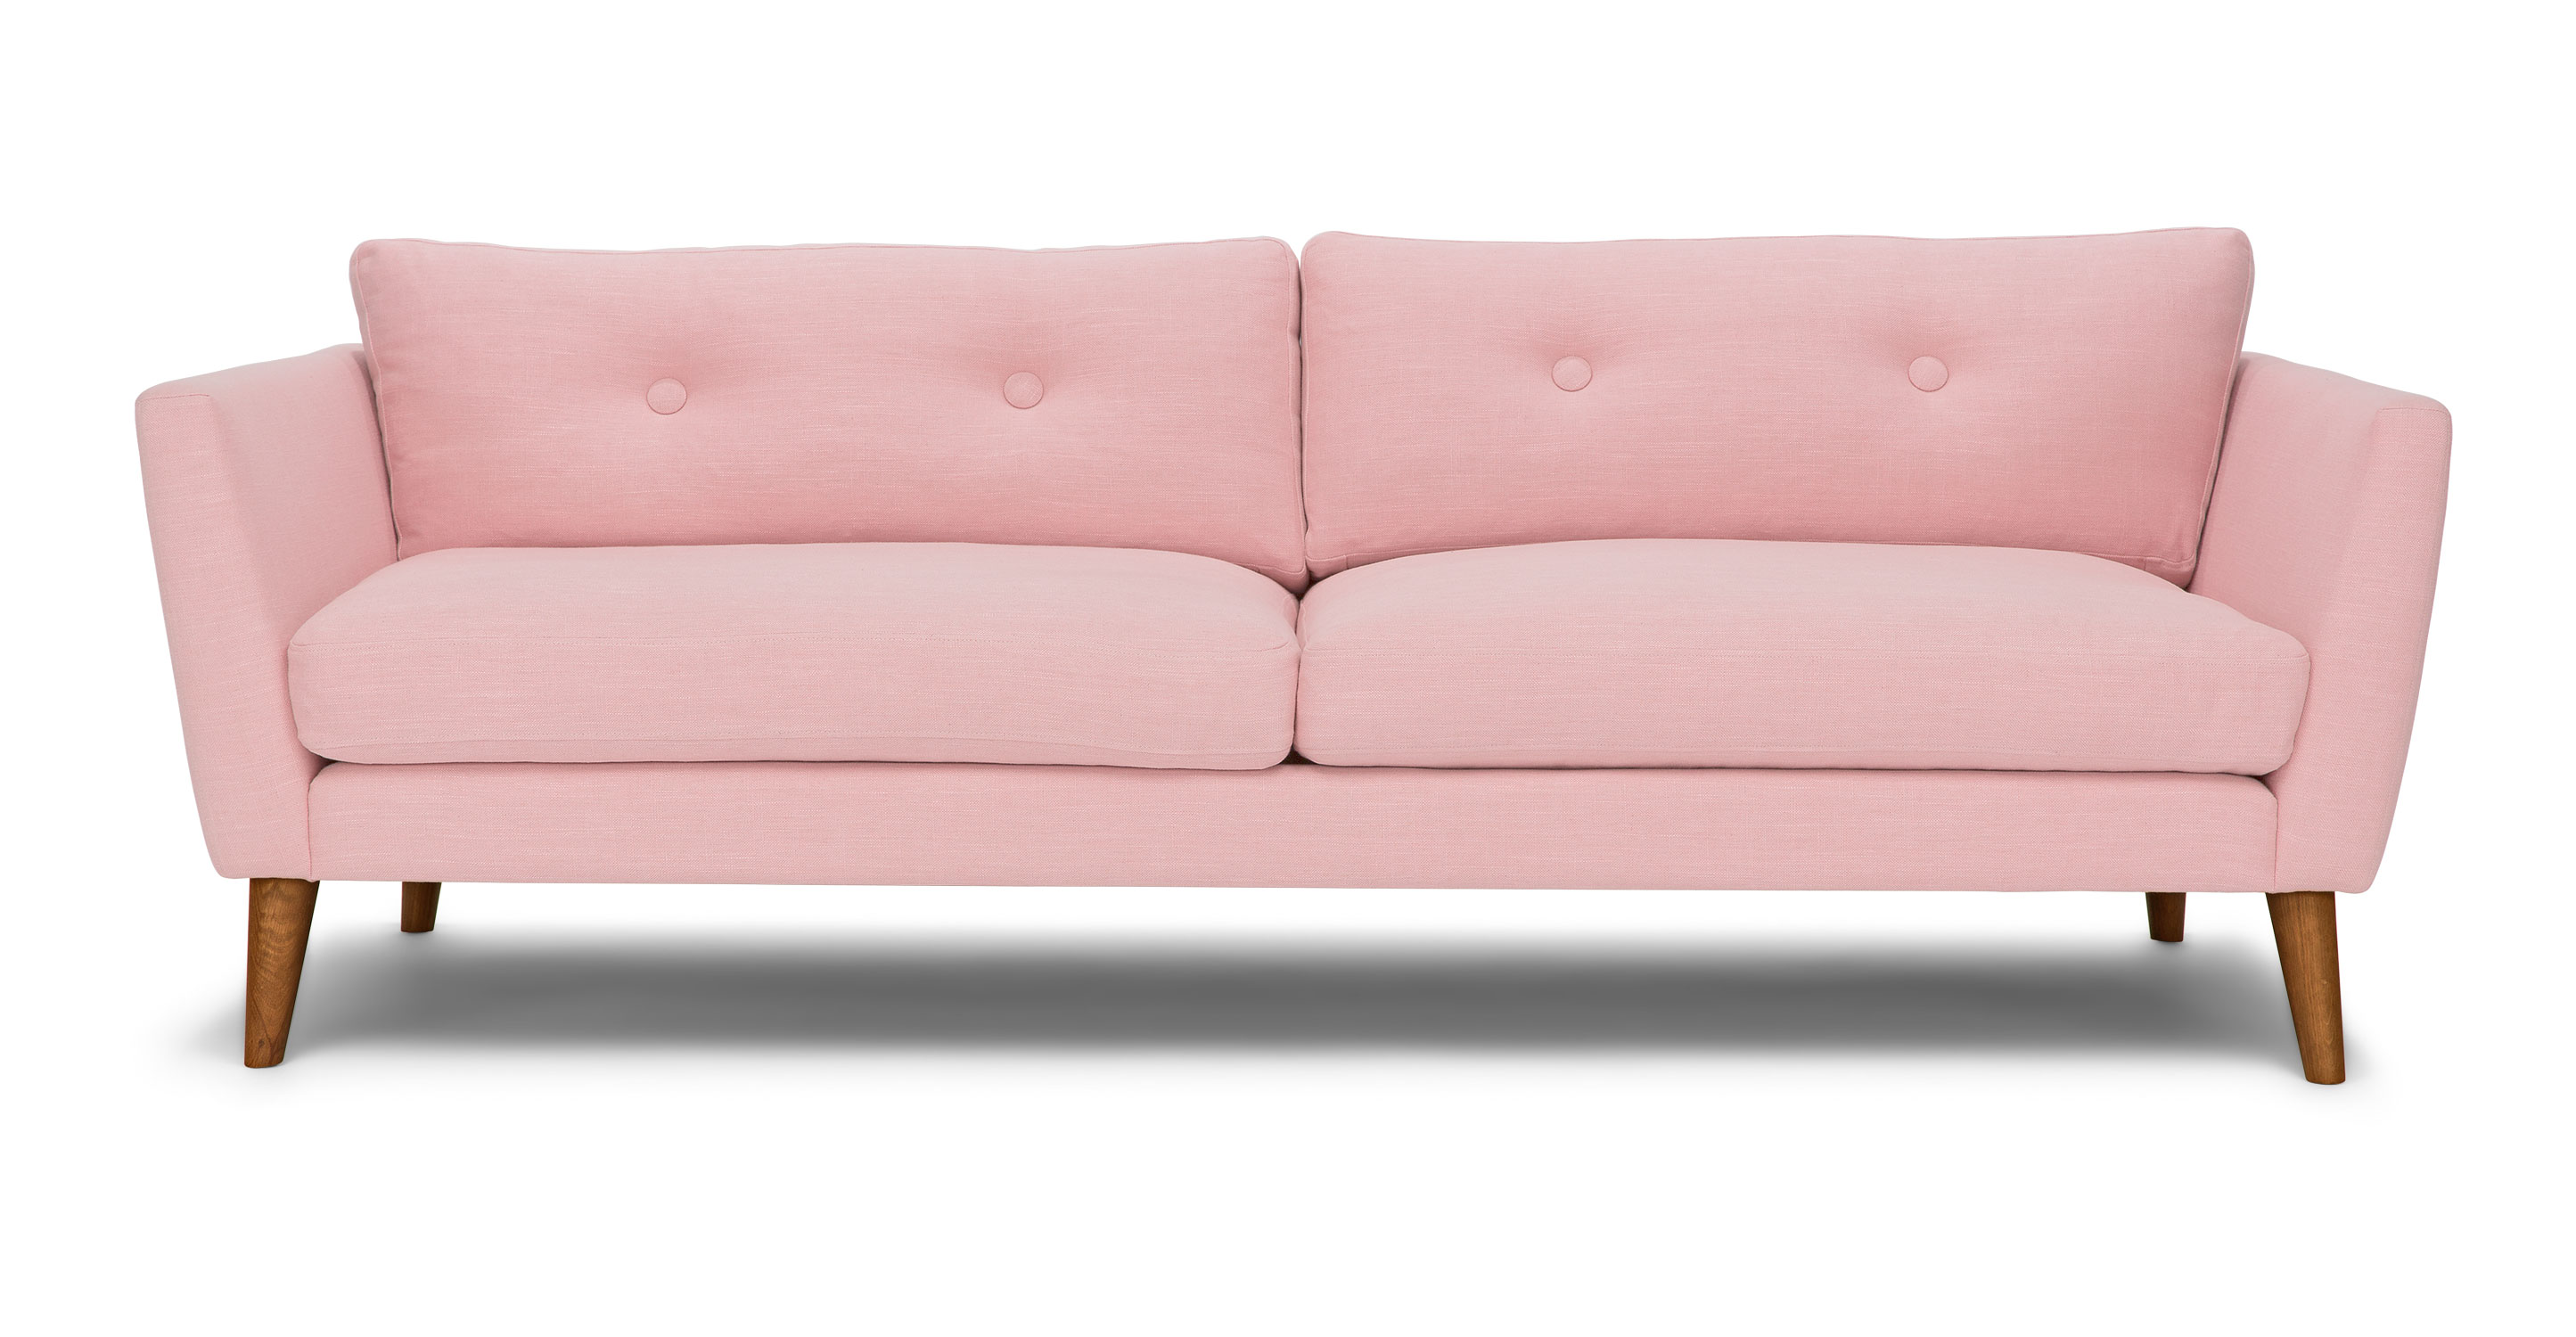 Rosa Couch Emil Quartz Rose Sofa - Sofas - Article | Modern, Mid ...